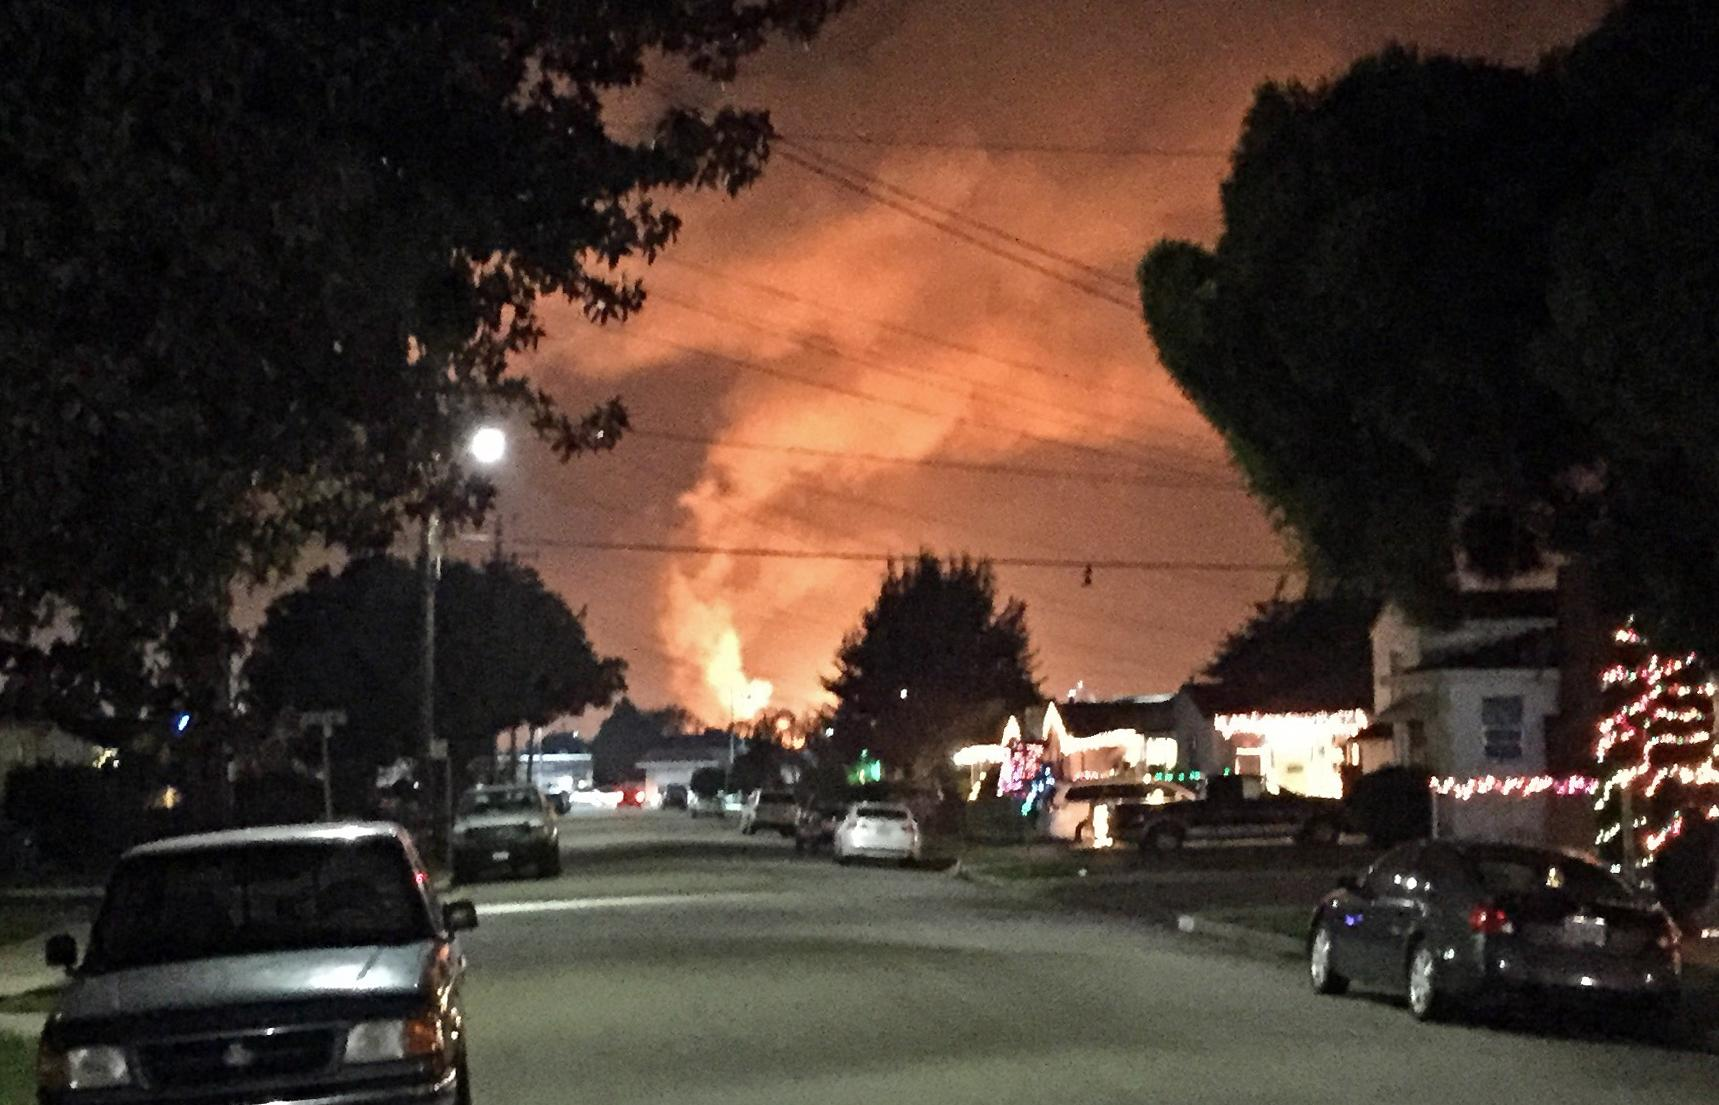 Chevron: Big flames at refinery no cause for alarm